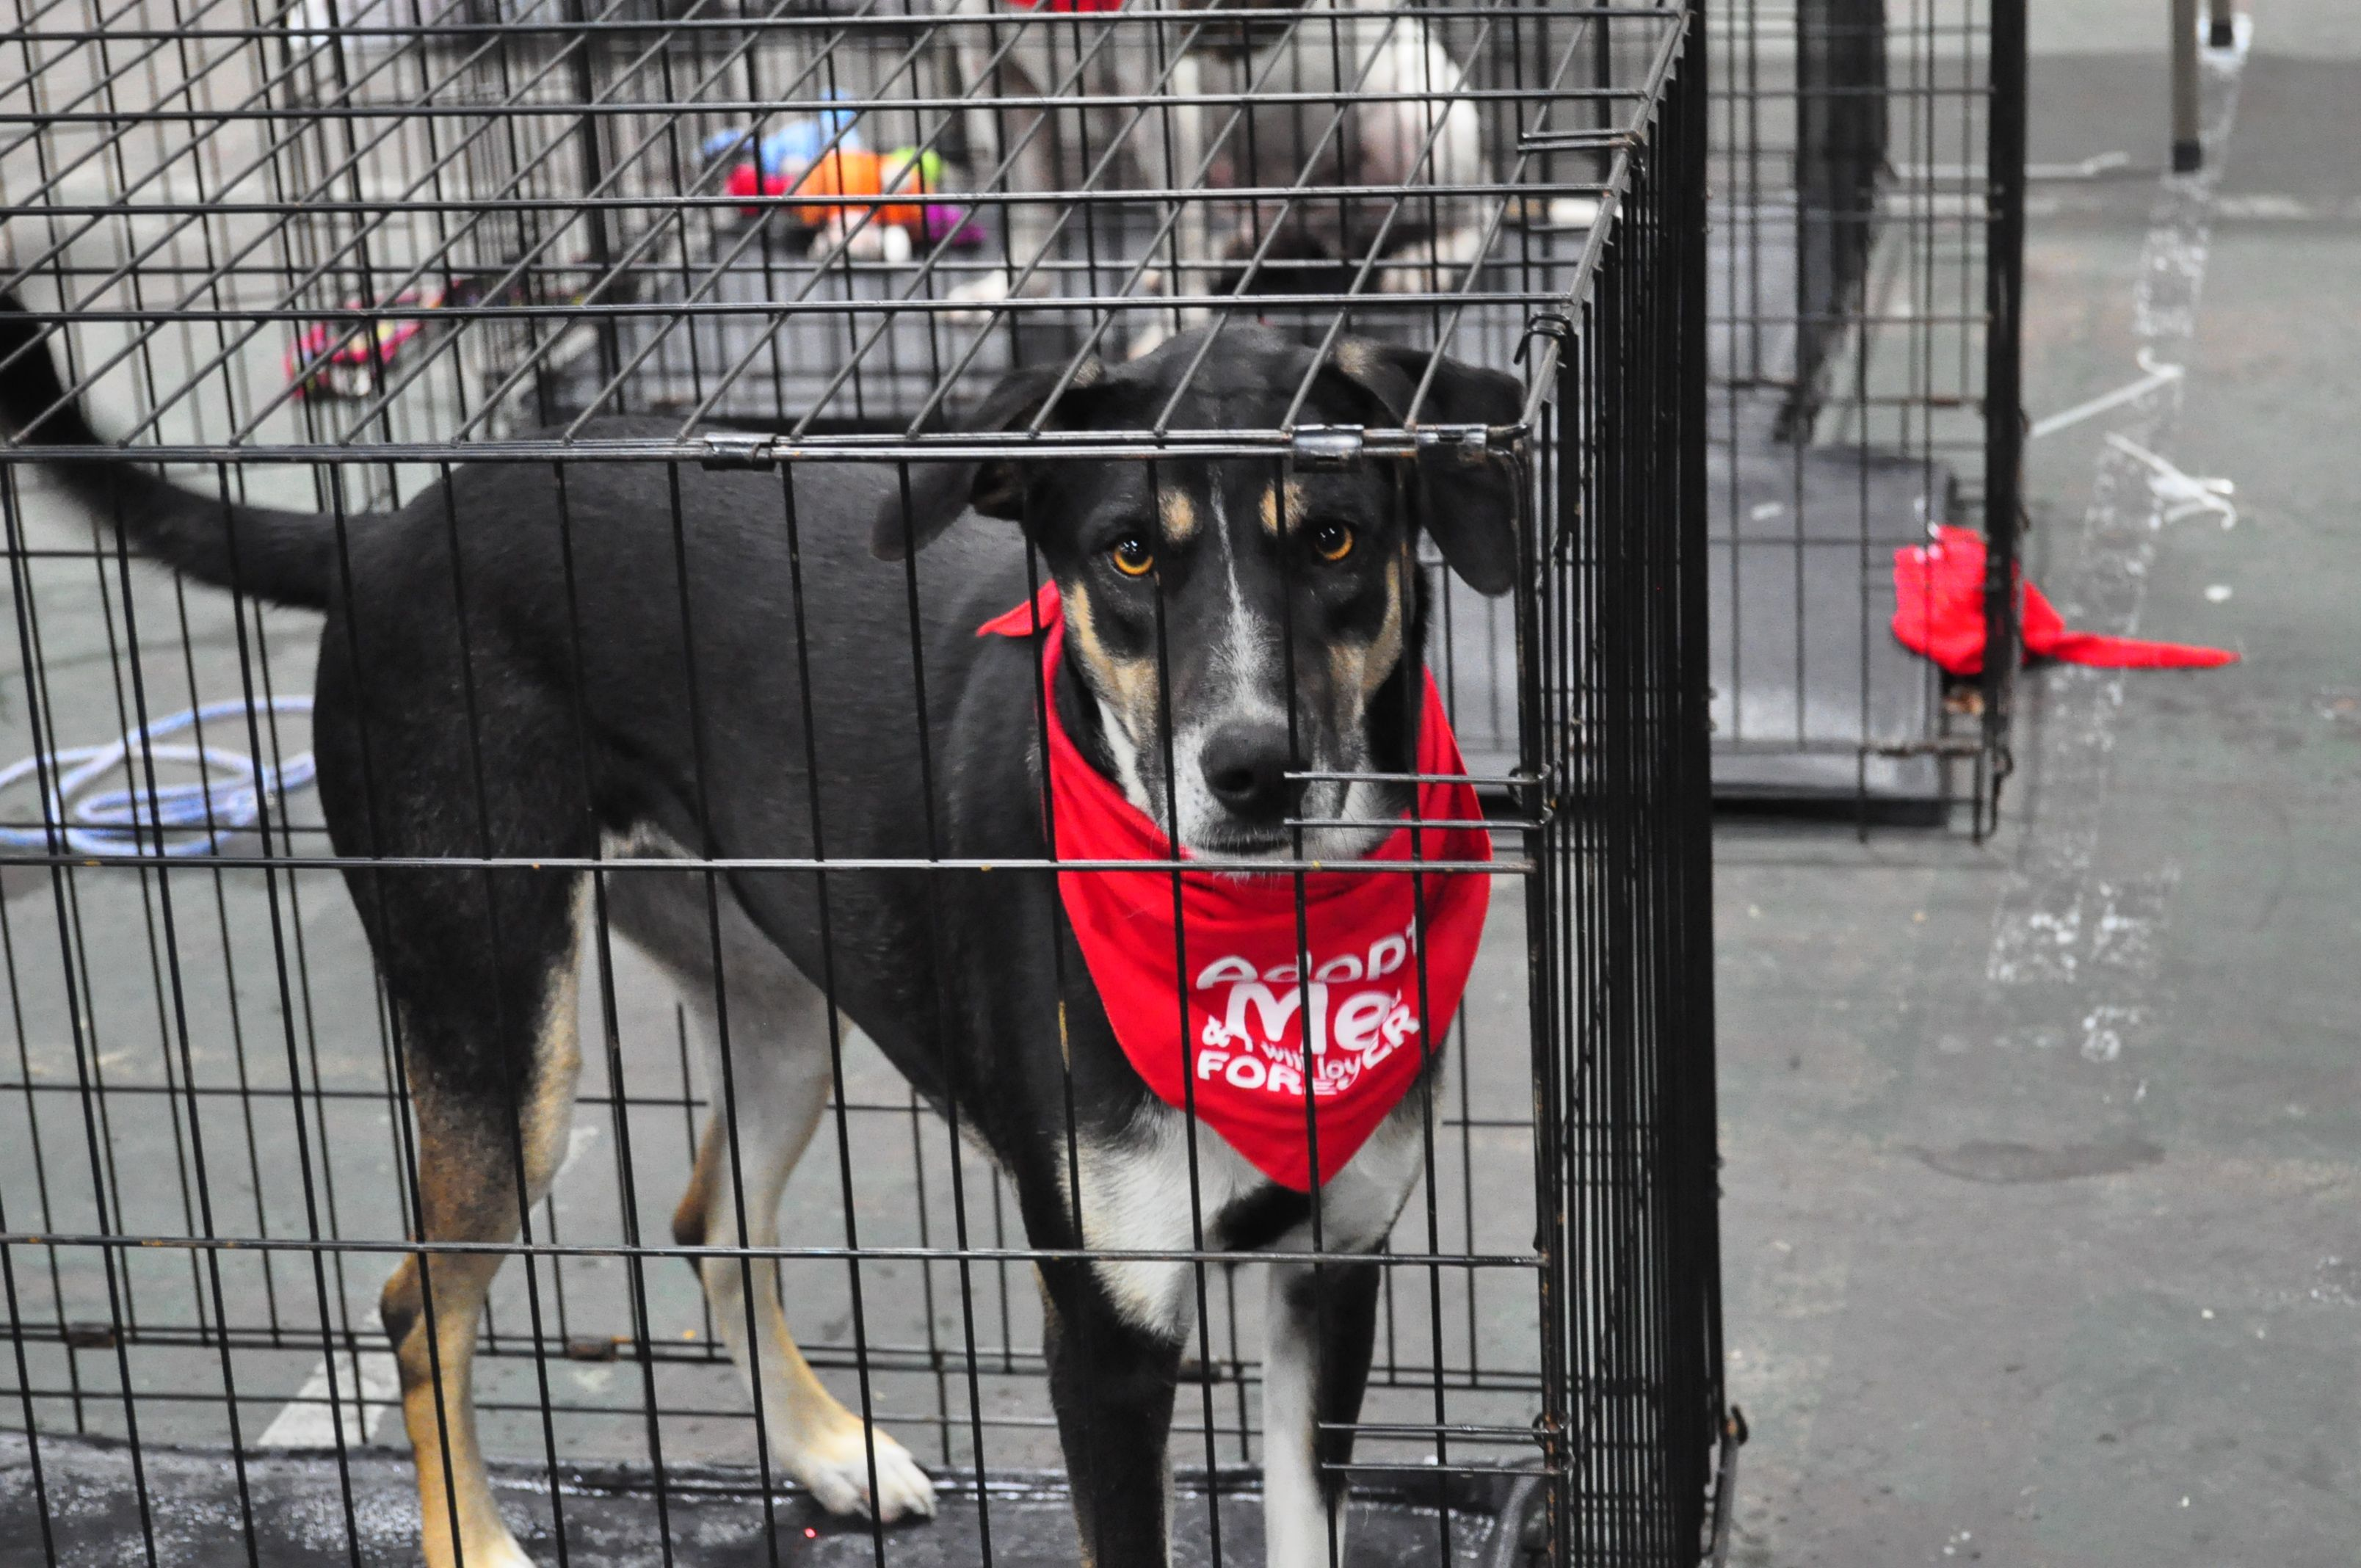 Colorful Adopt Me Bandanas Can Help Draw Attention To Dogs In